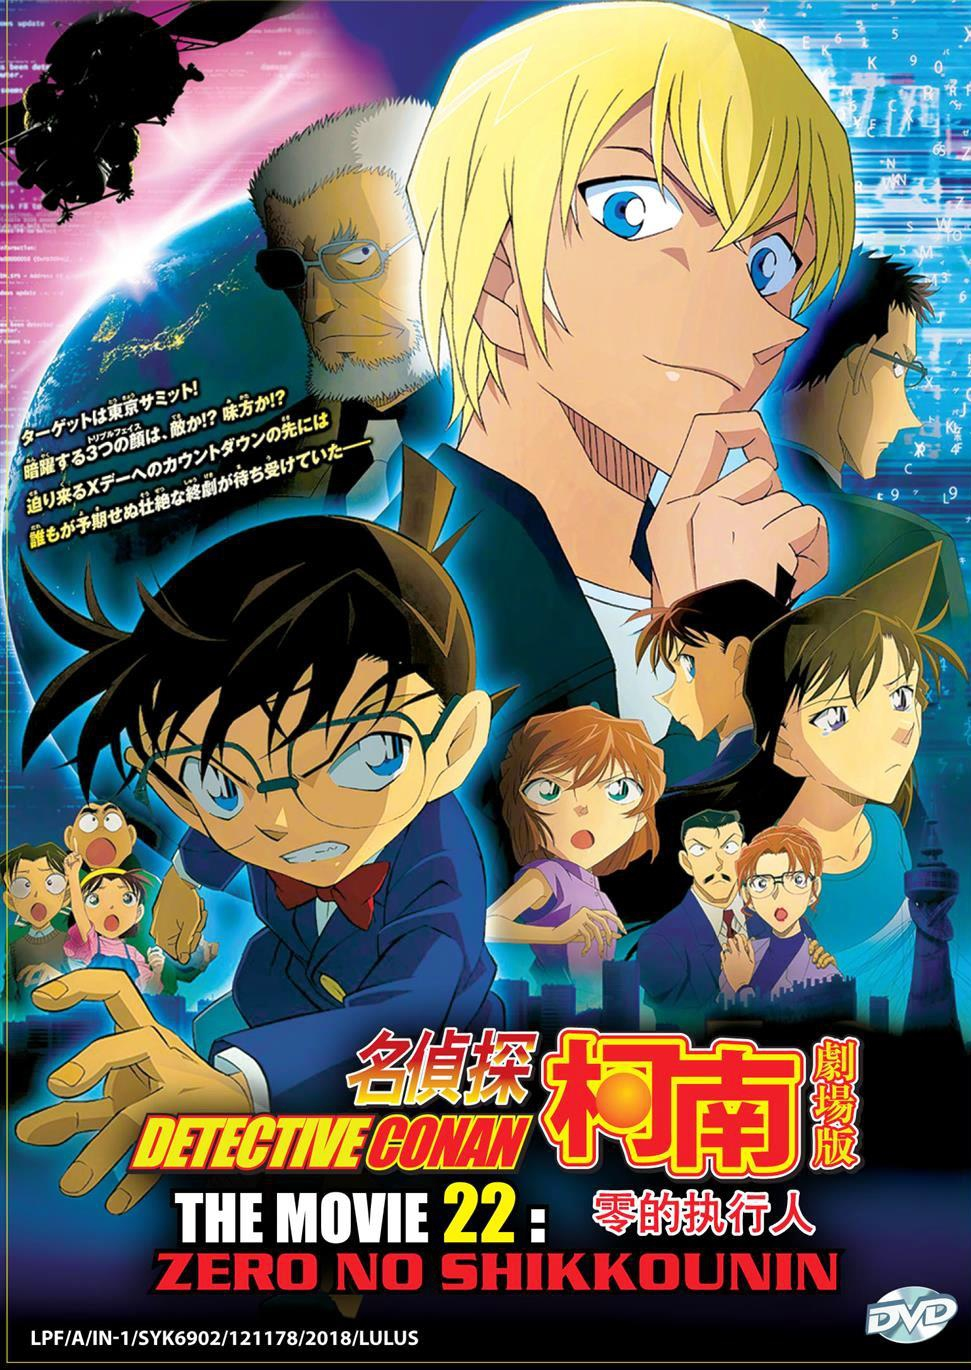 Detective Conan The Movie 22 Zero no Shikkounin 名 侦